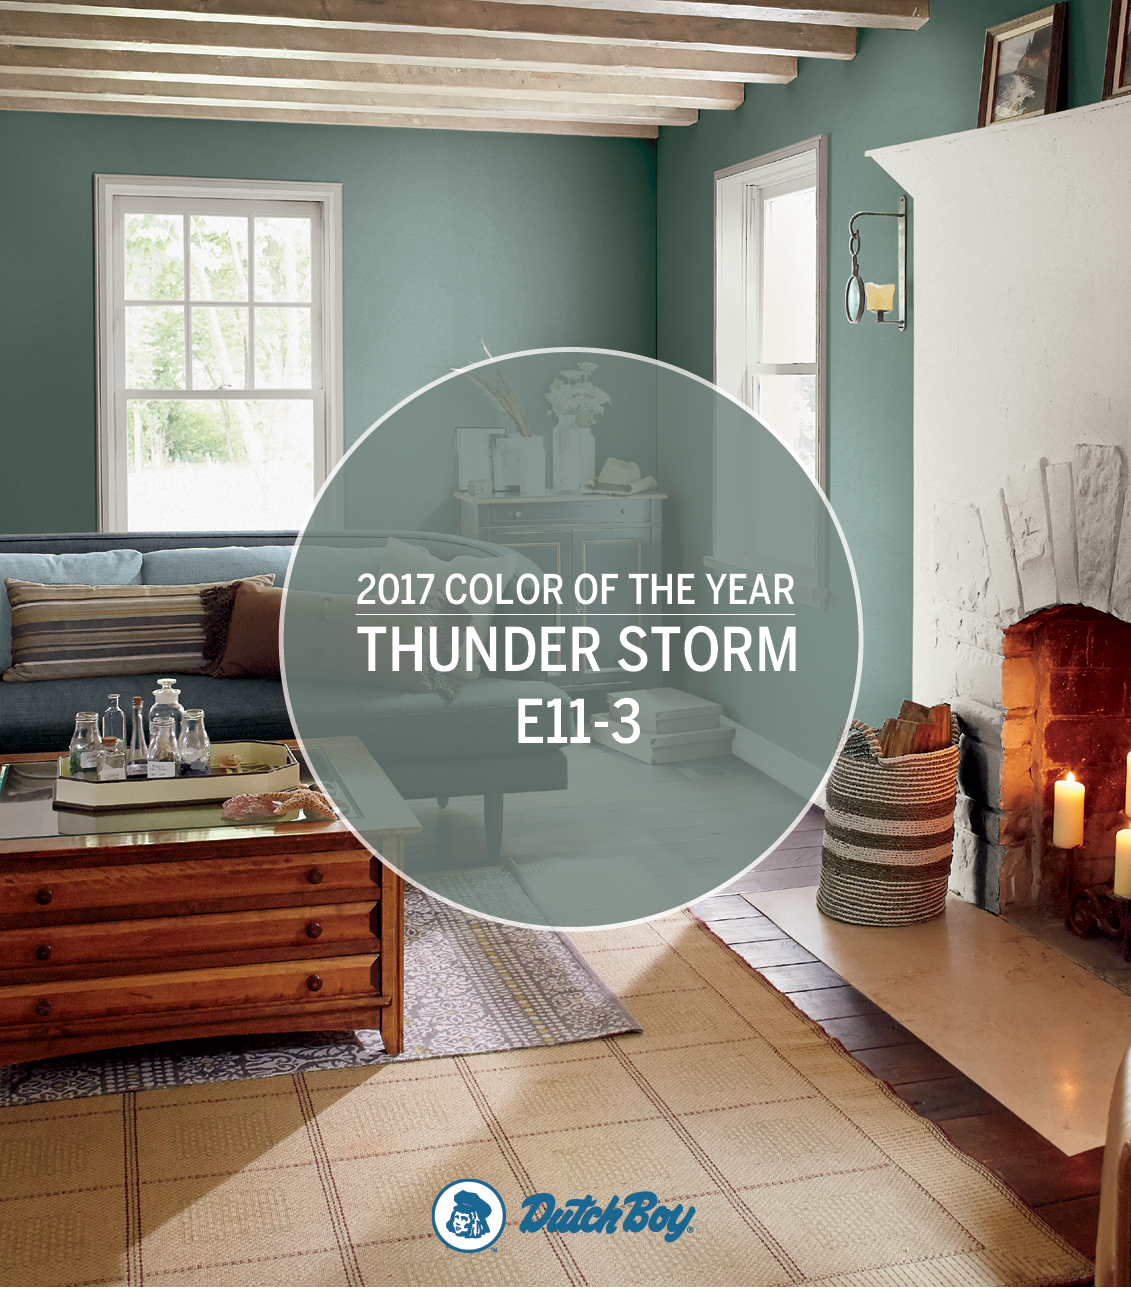 Rejuvenate your home with the Dutch Boy® 2017 Color of the Year, Thunder Storm E11-3. Discover this soothing, versatile shade and more Dutch Boy colors on our trends board.